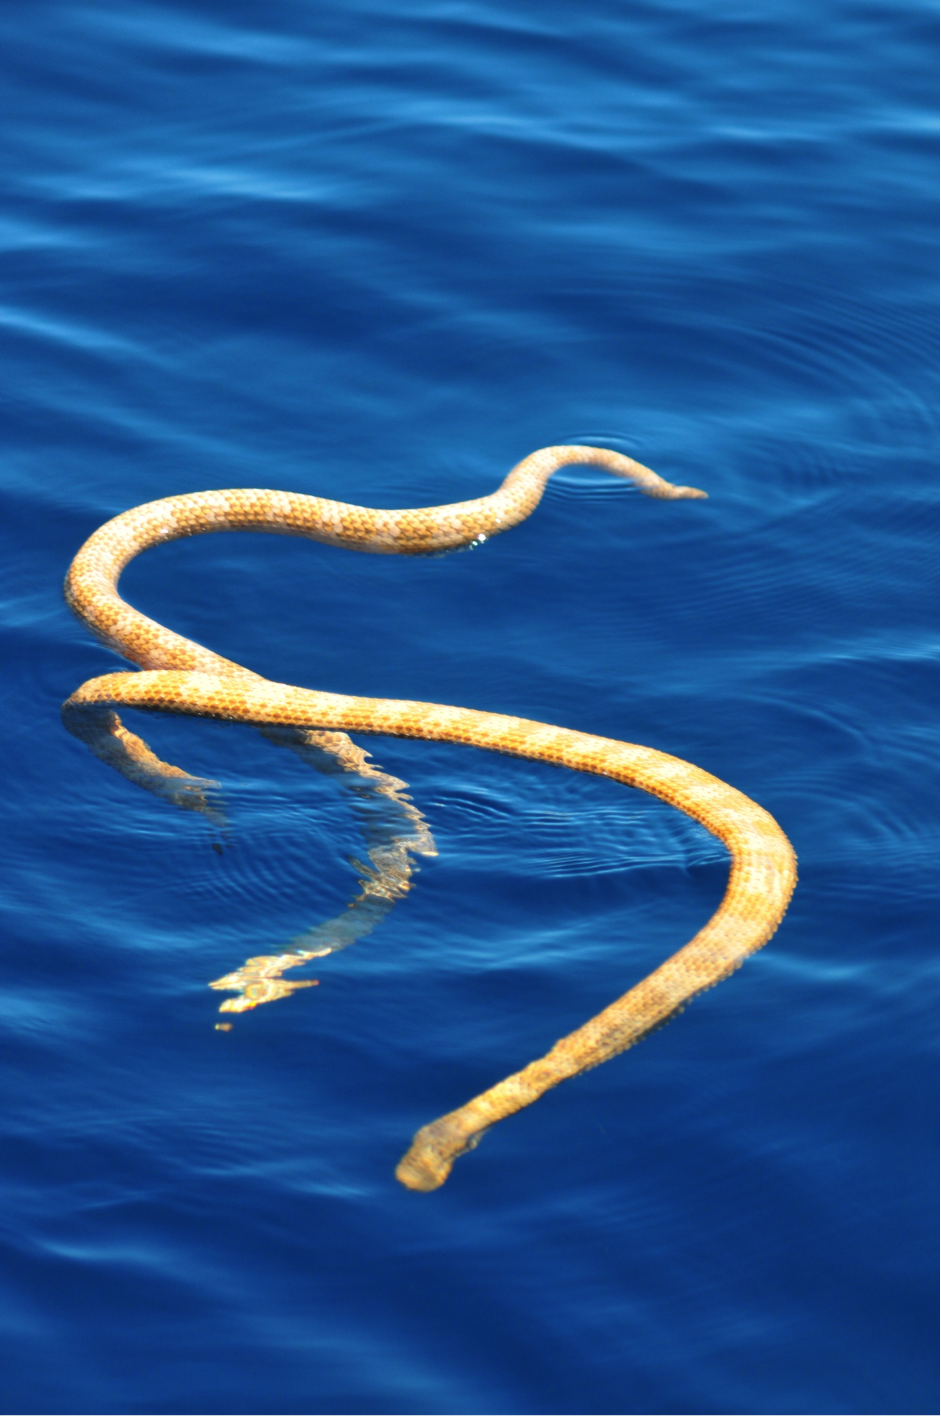 sea snake or you know you can run away from one that stripped